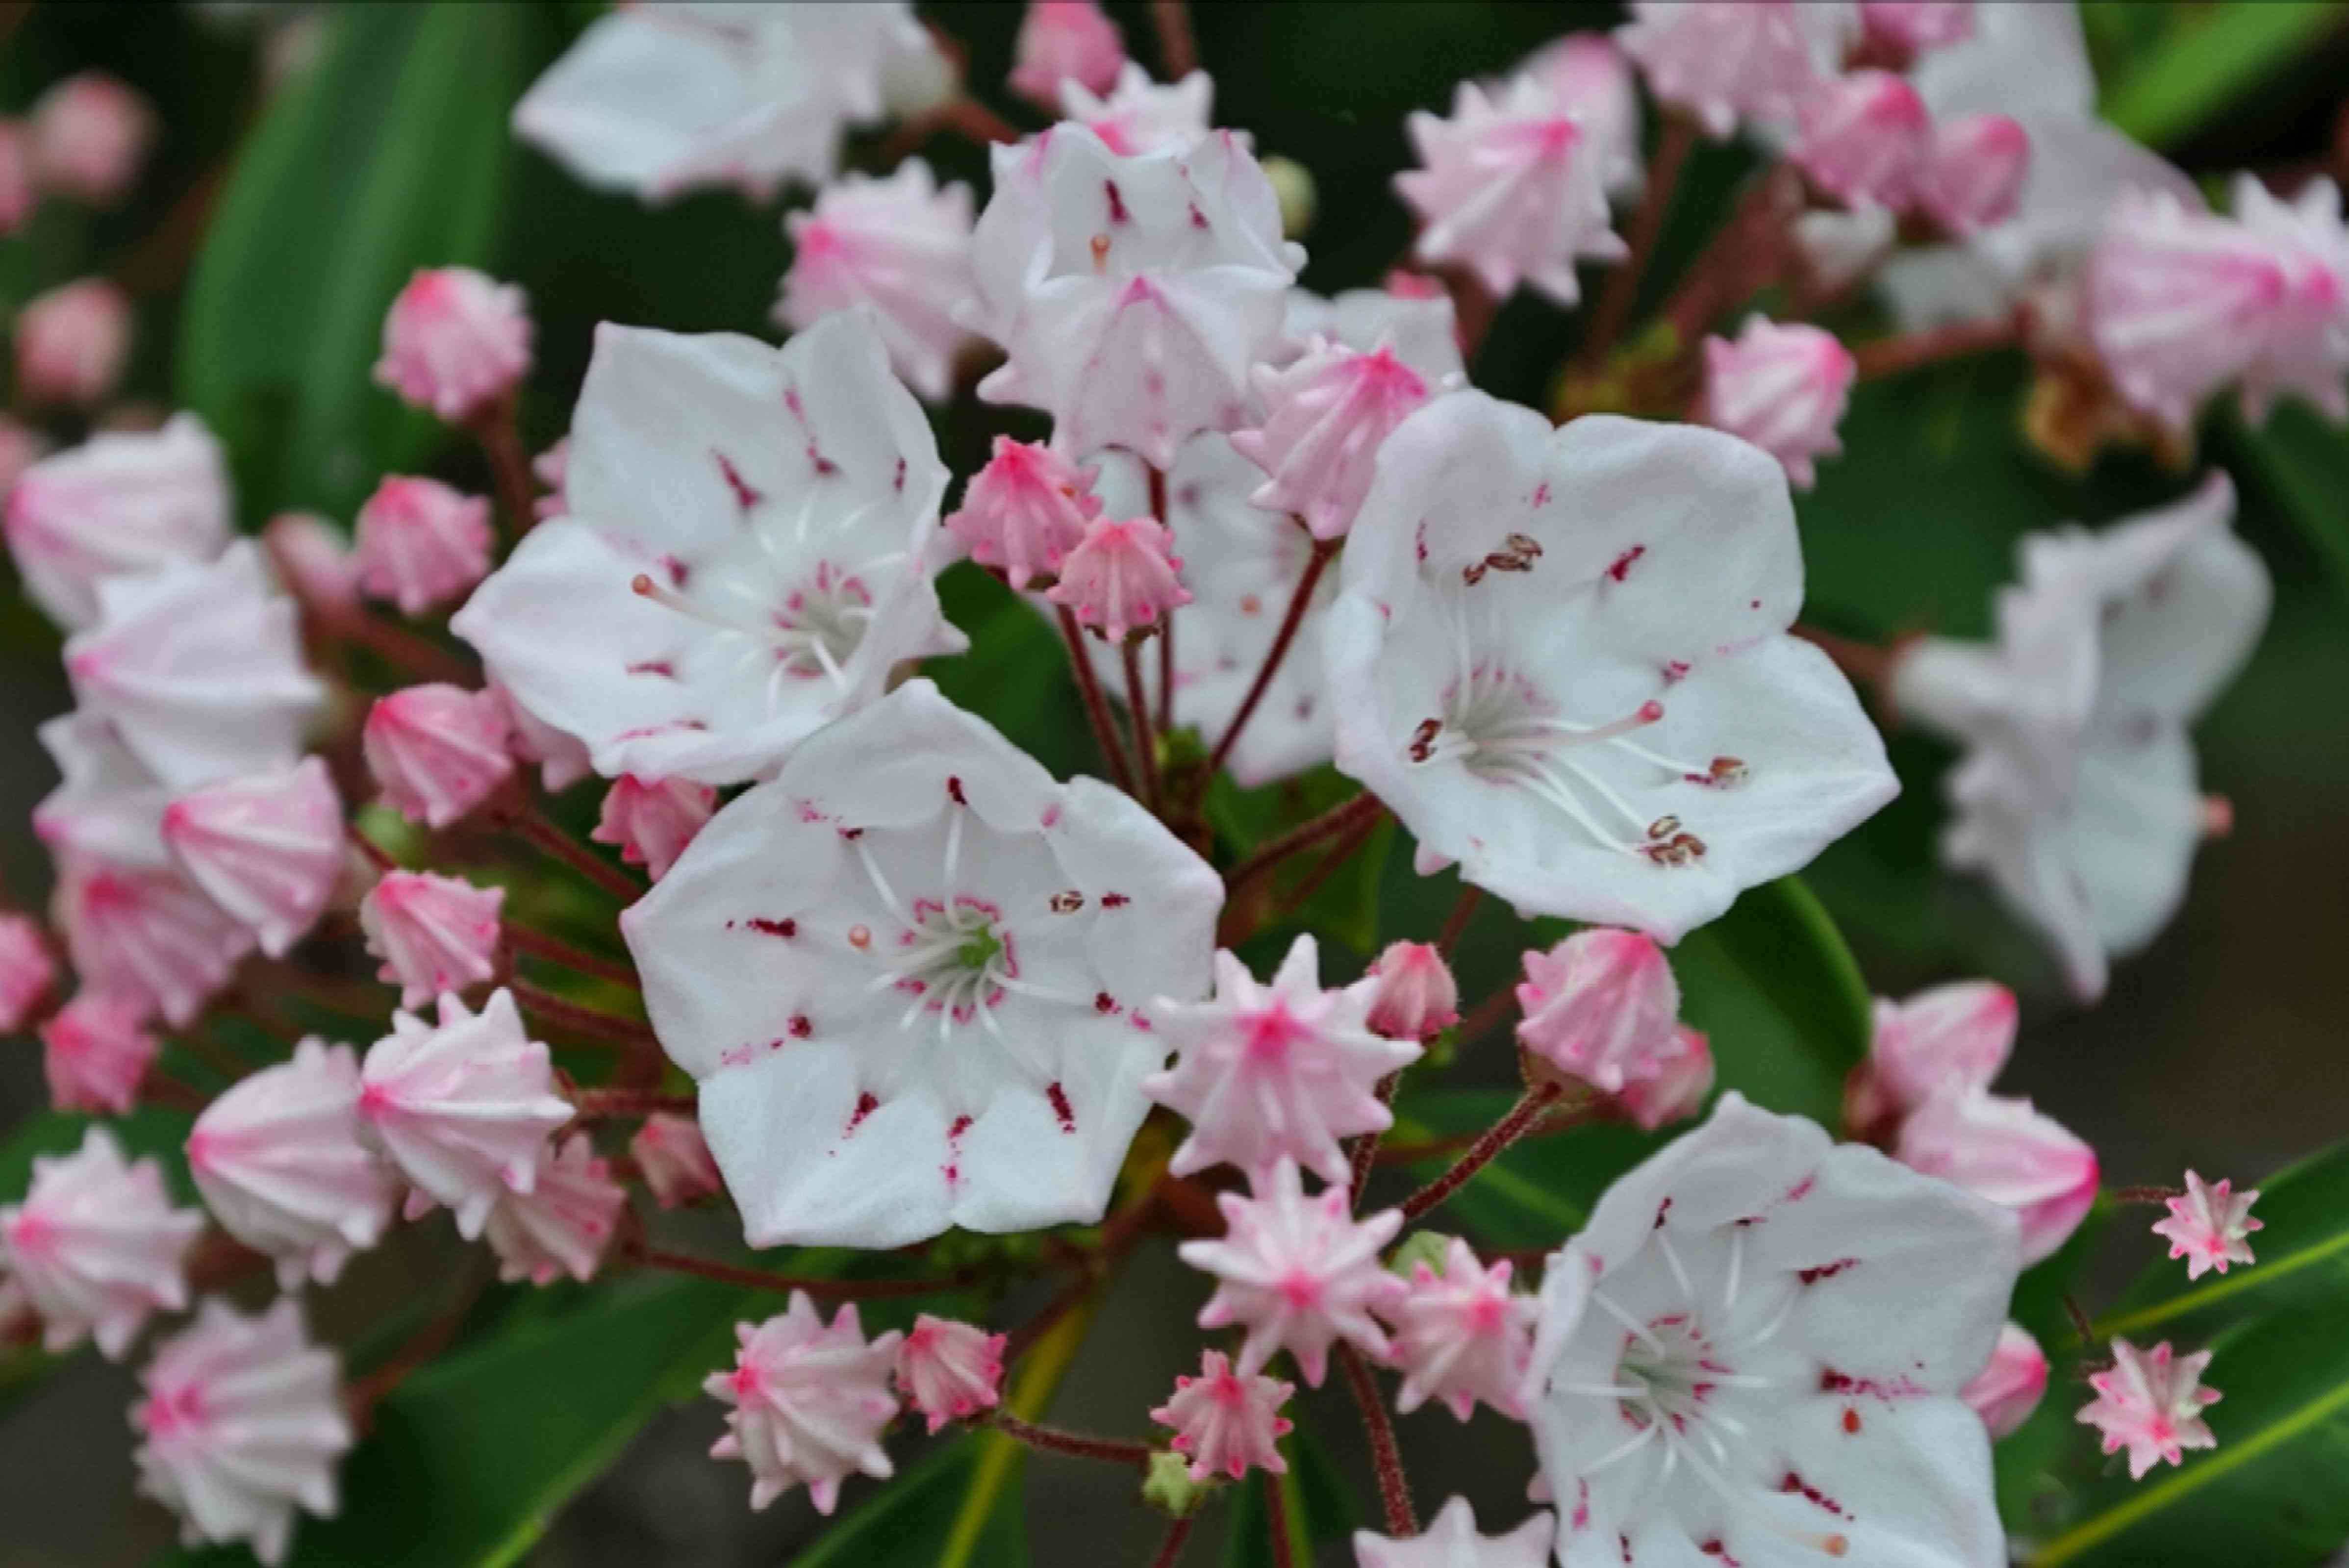 Mountain laurel bush branch with small white blossoms and pink buds clustered together closeup